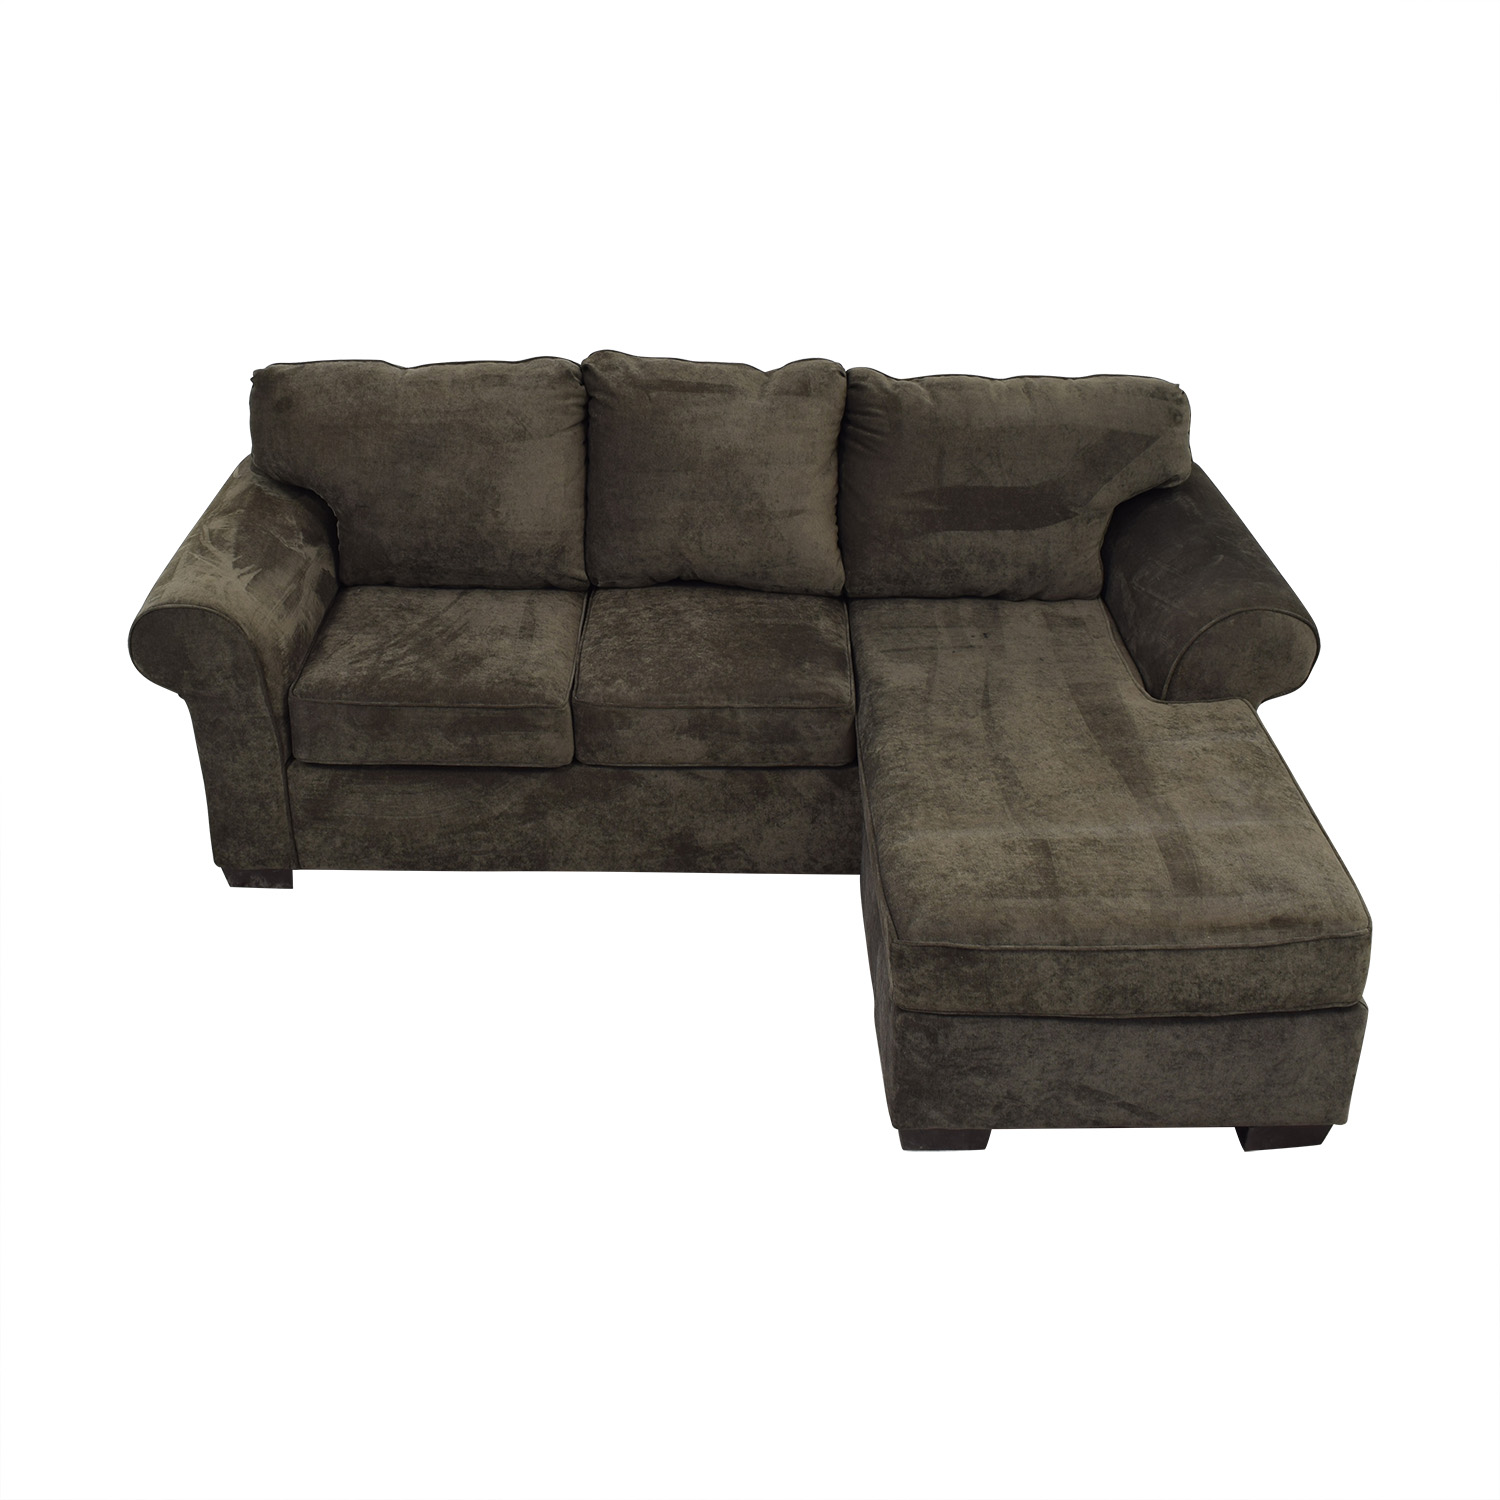 Raymour & Flanigan Raymour & Flanigan Grey Chaise Sectional discount